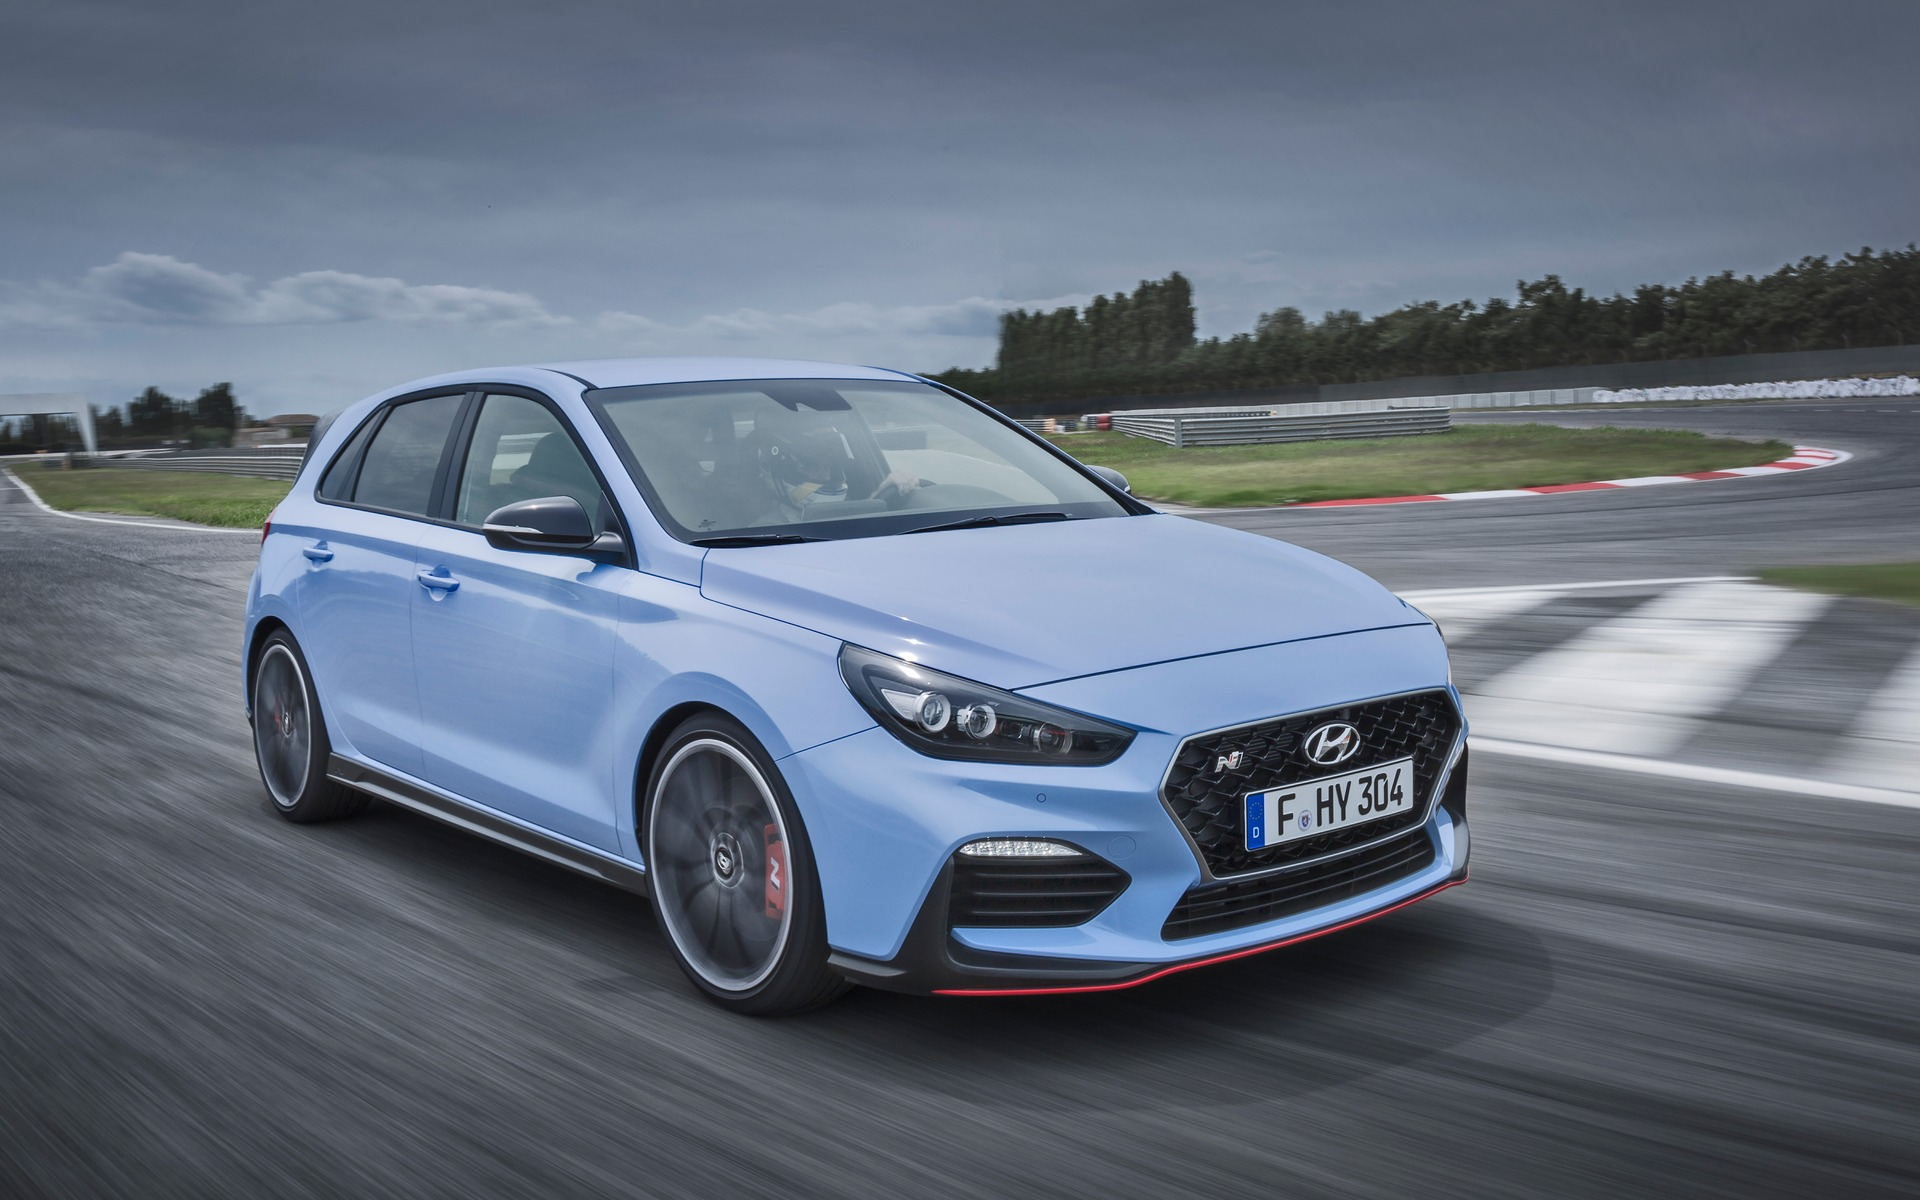 elantra n gt en car the slightly below hyundai articles guide revealed models new expectations